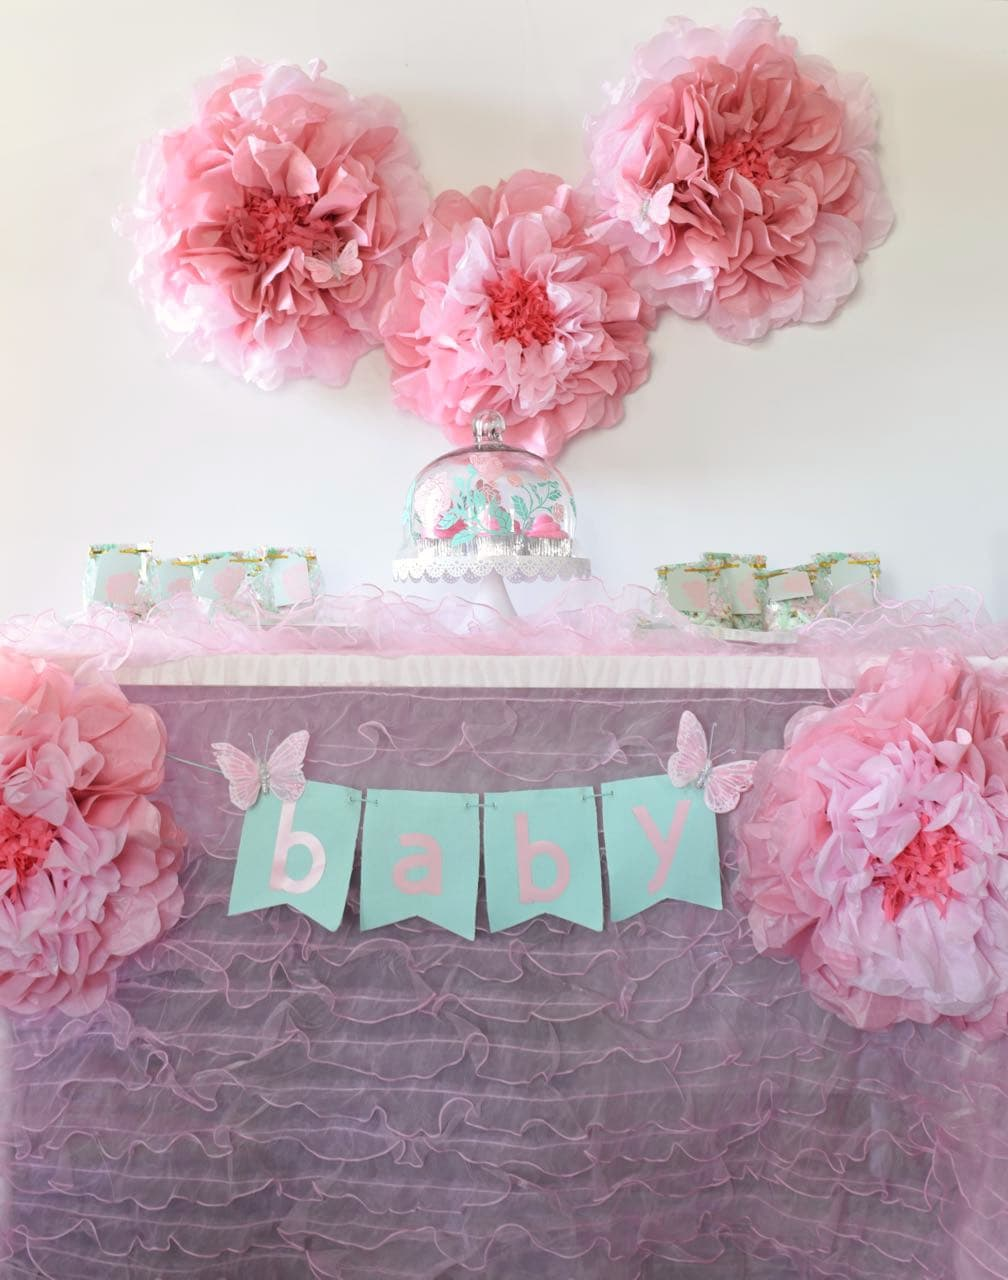 e6a4485c1a6 Girl Baby Shower Ideas + Free Cut Files - Make Life Lovely